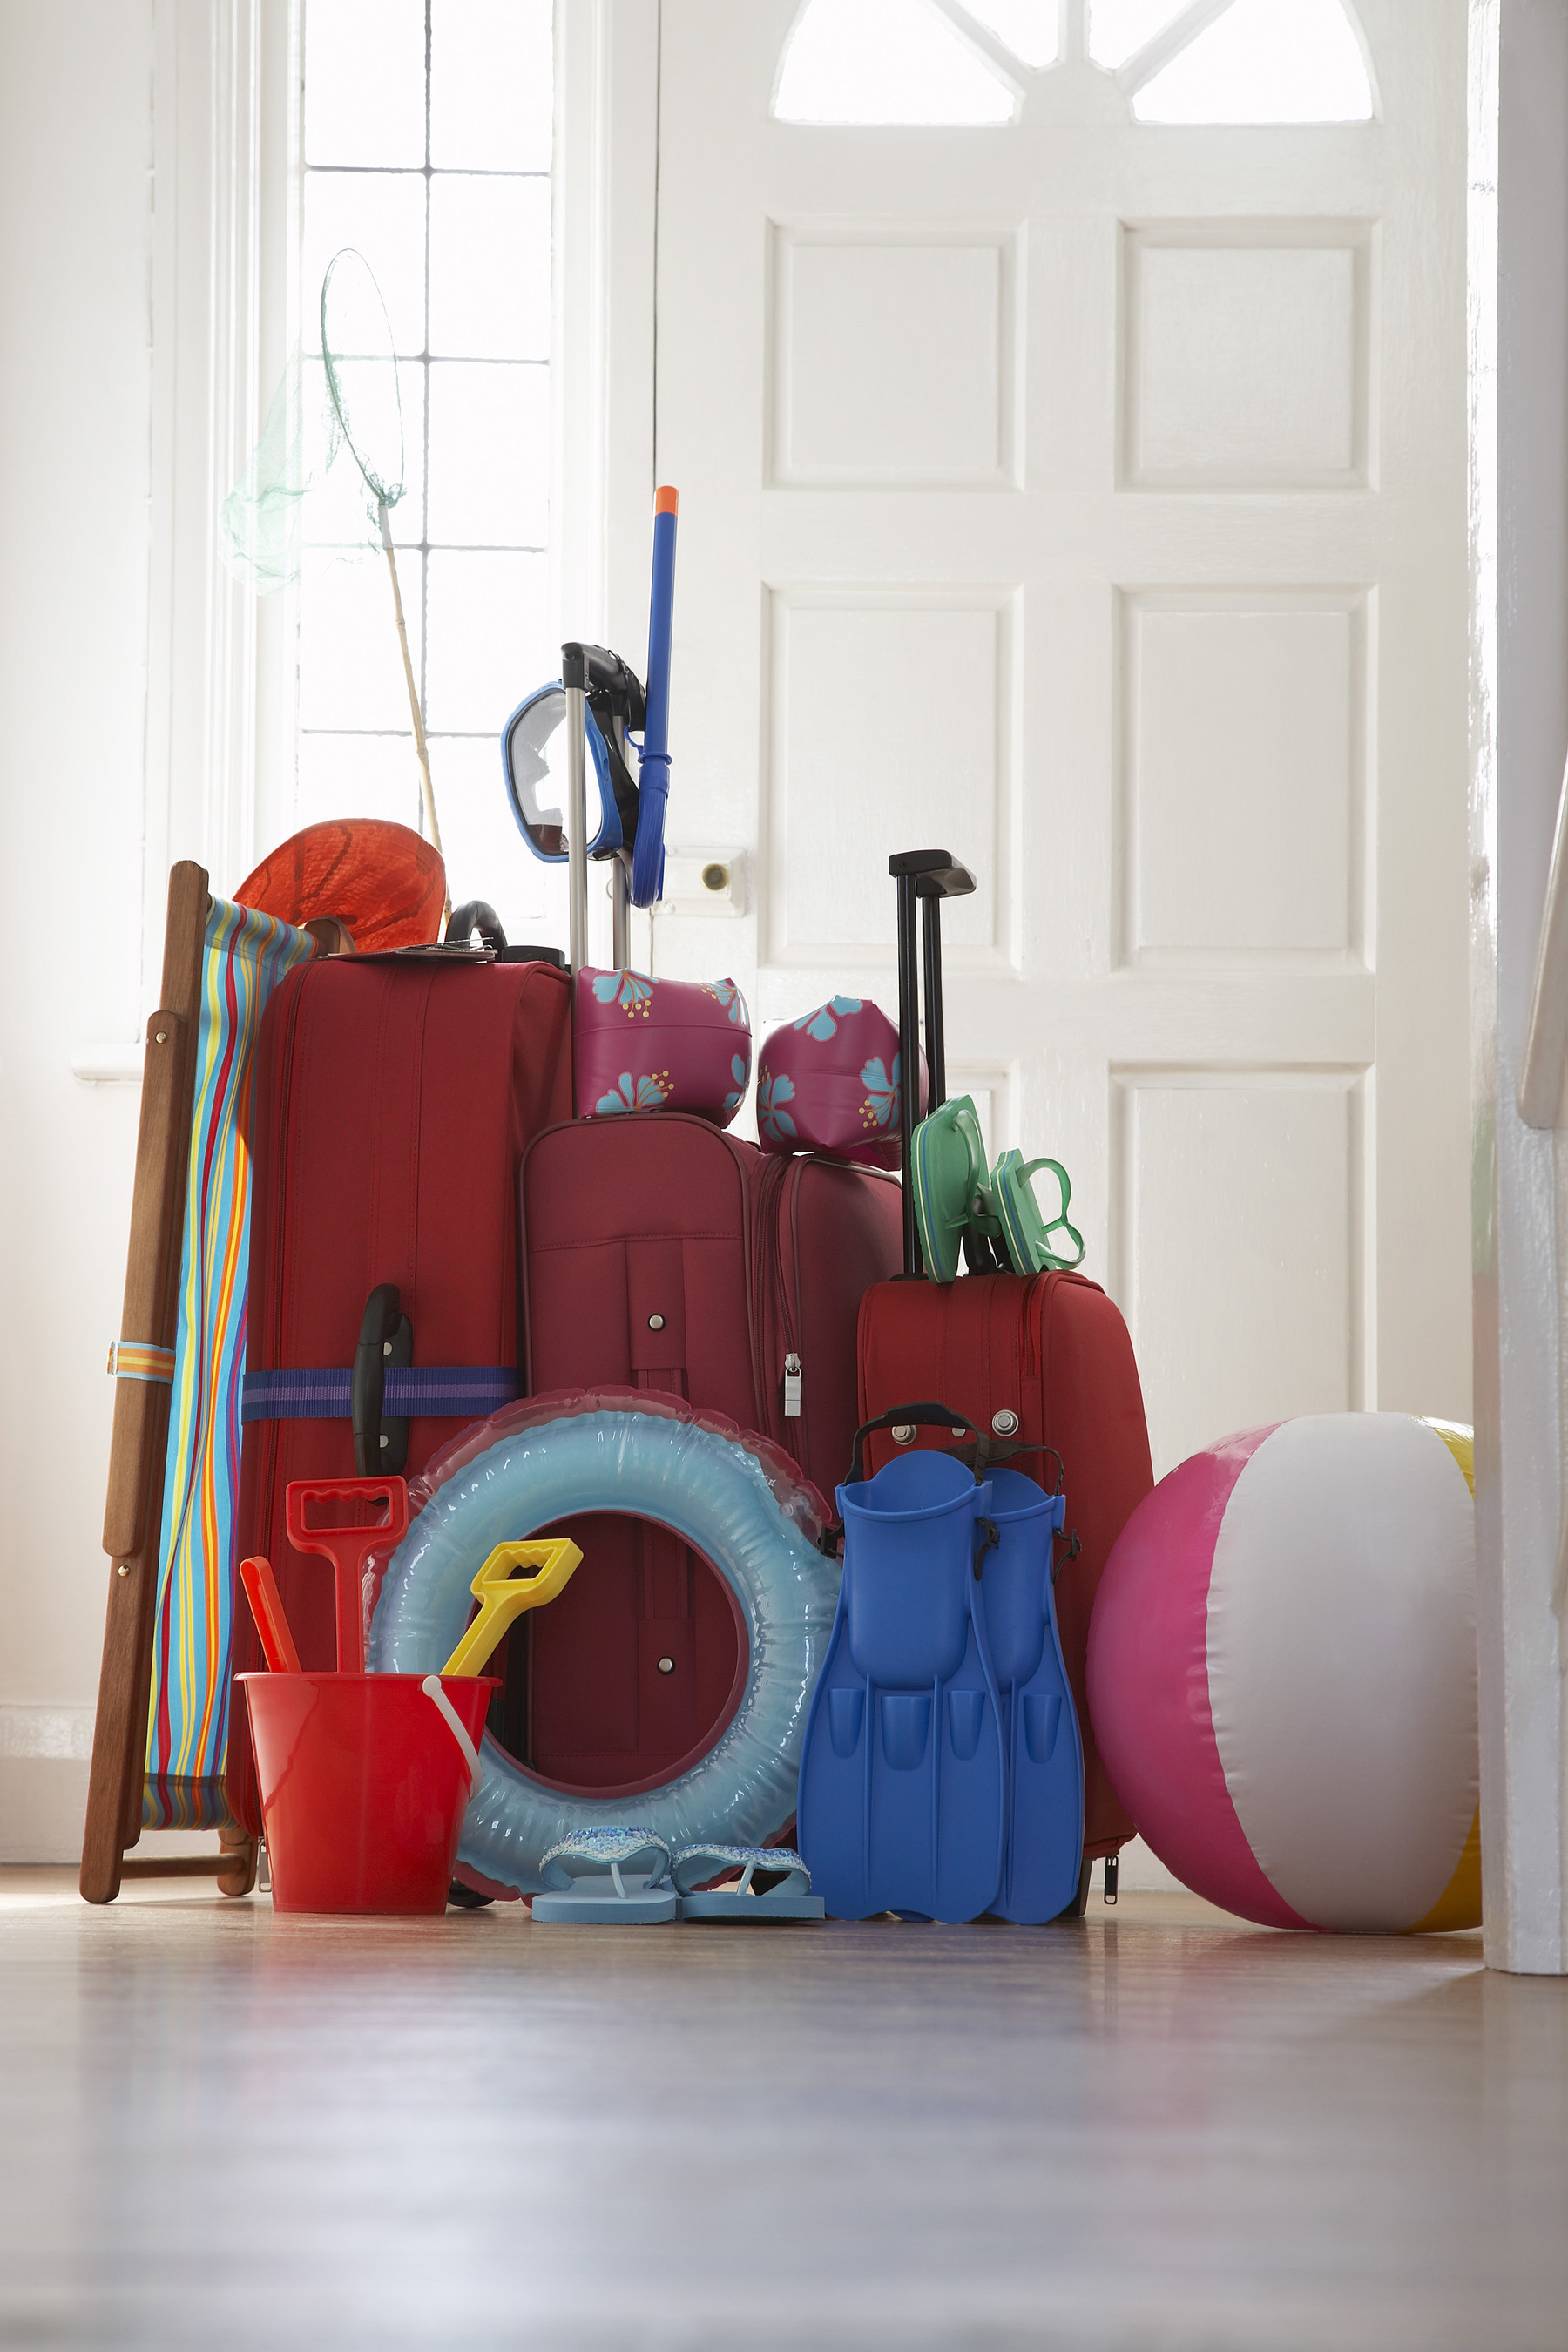 Gold Medal Service Offers Tips to Prepare your Home for Summer Vacation